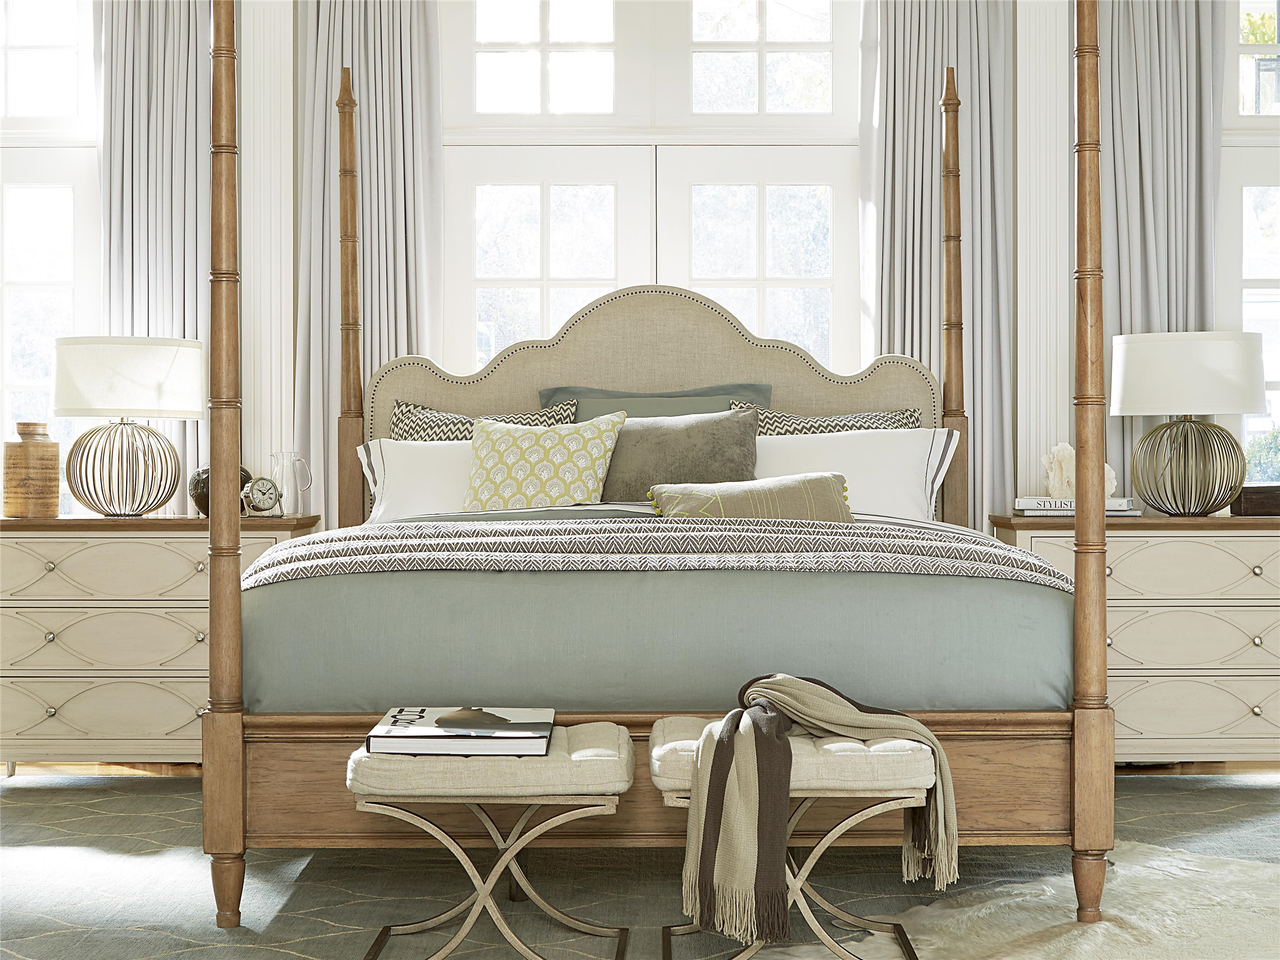 dd0d7ac92fc95 French Modern King Four Poster Bed Frame